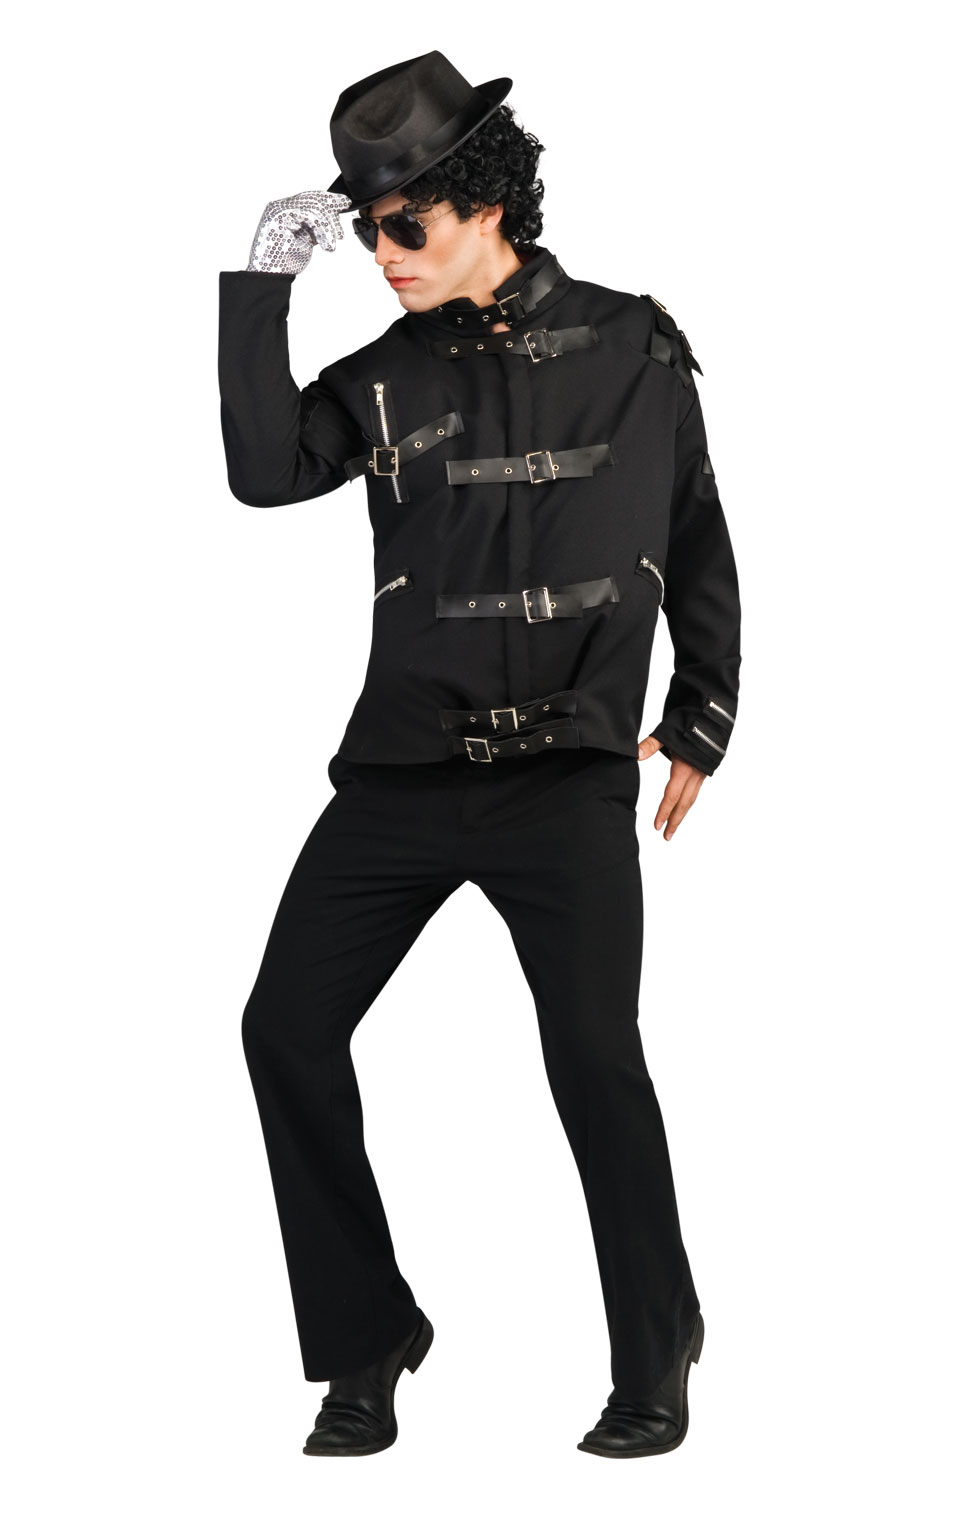 MENS/POPSTARS & CELEBRITIES/MJ DELUXE BAD BLACK BUCKLE JACKET